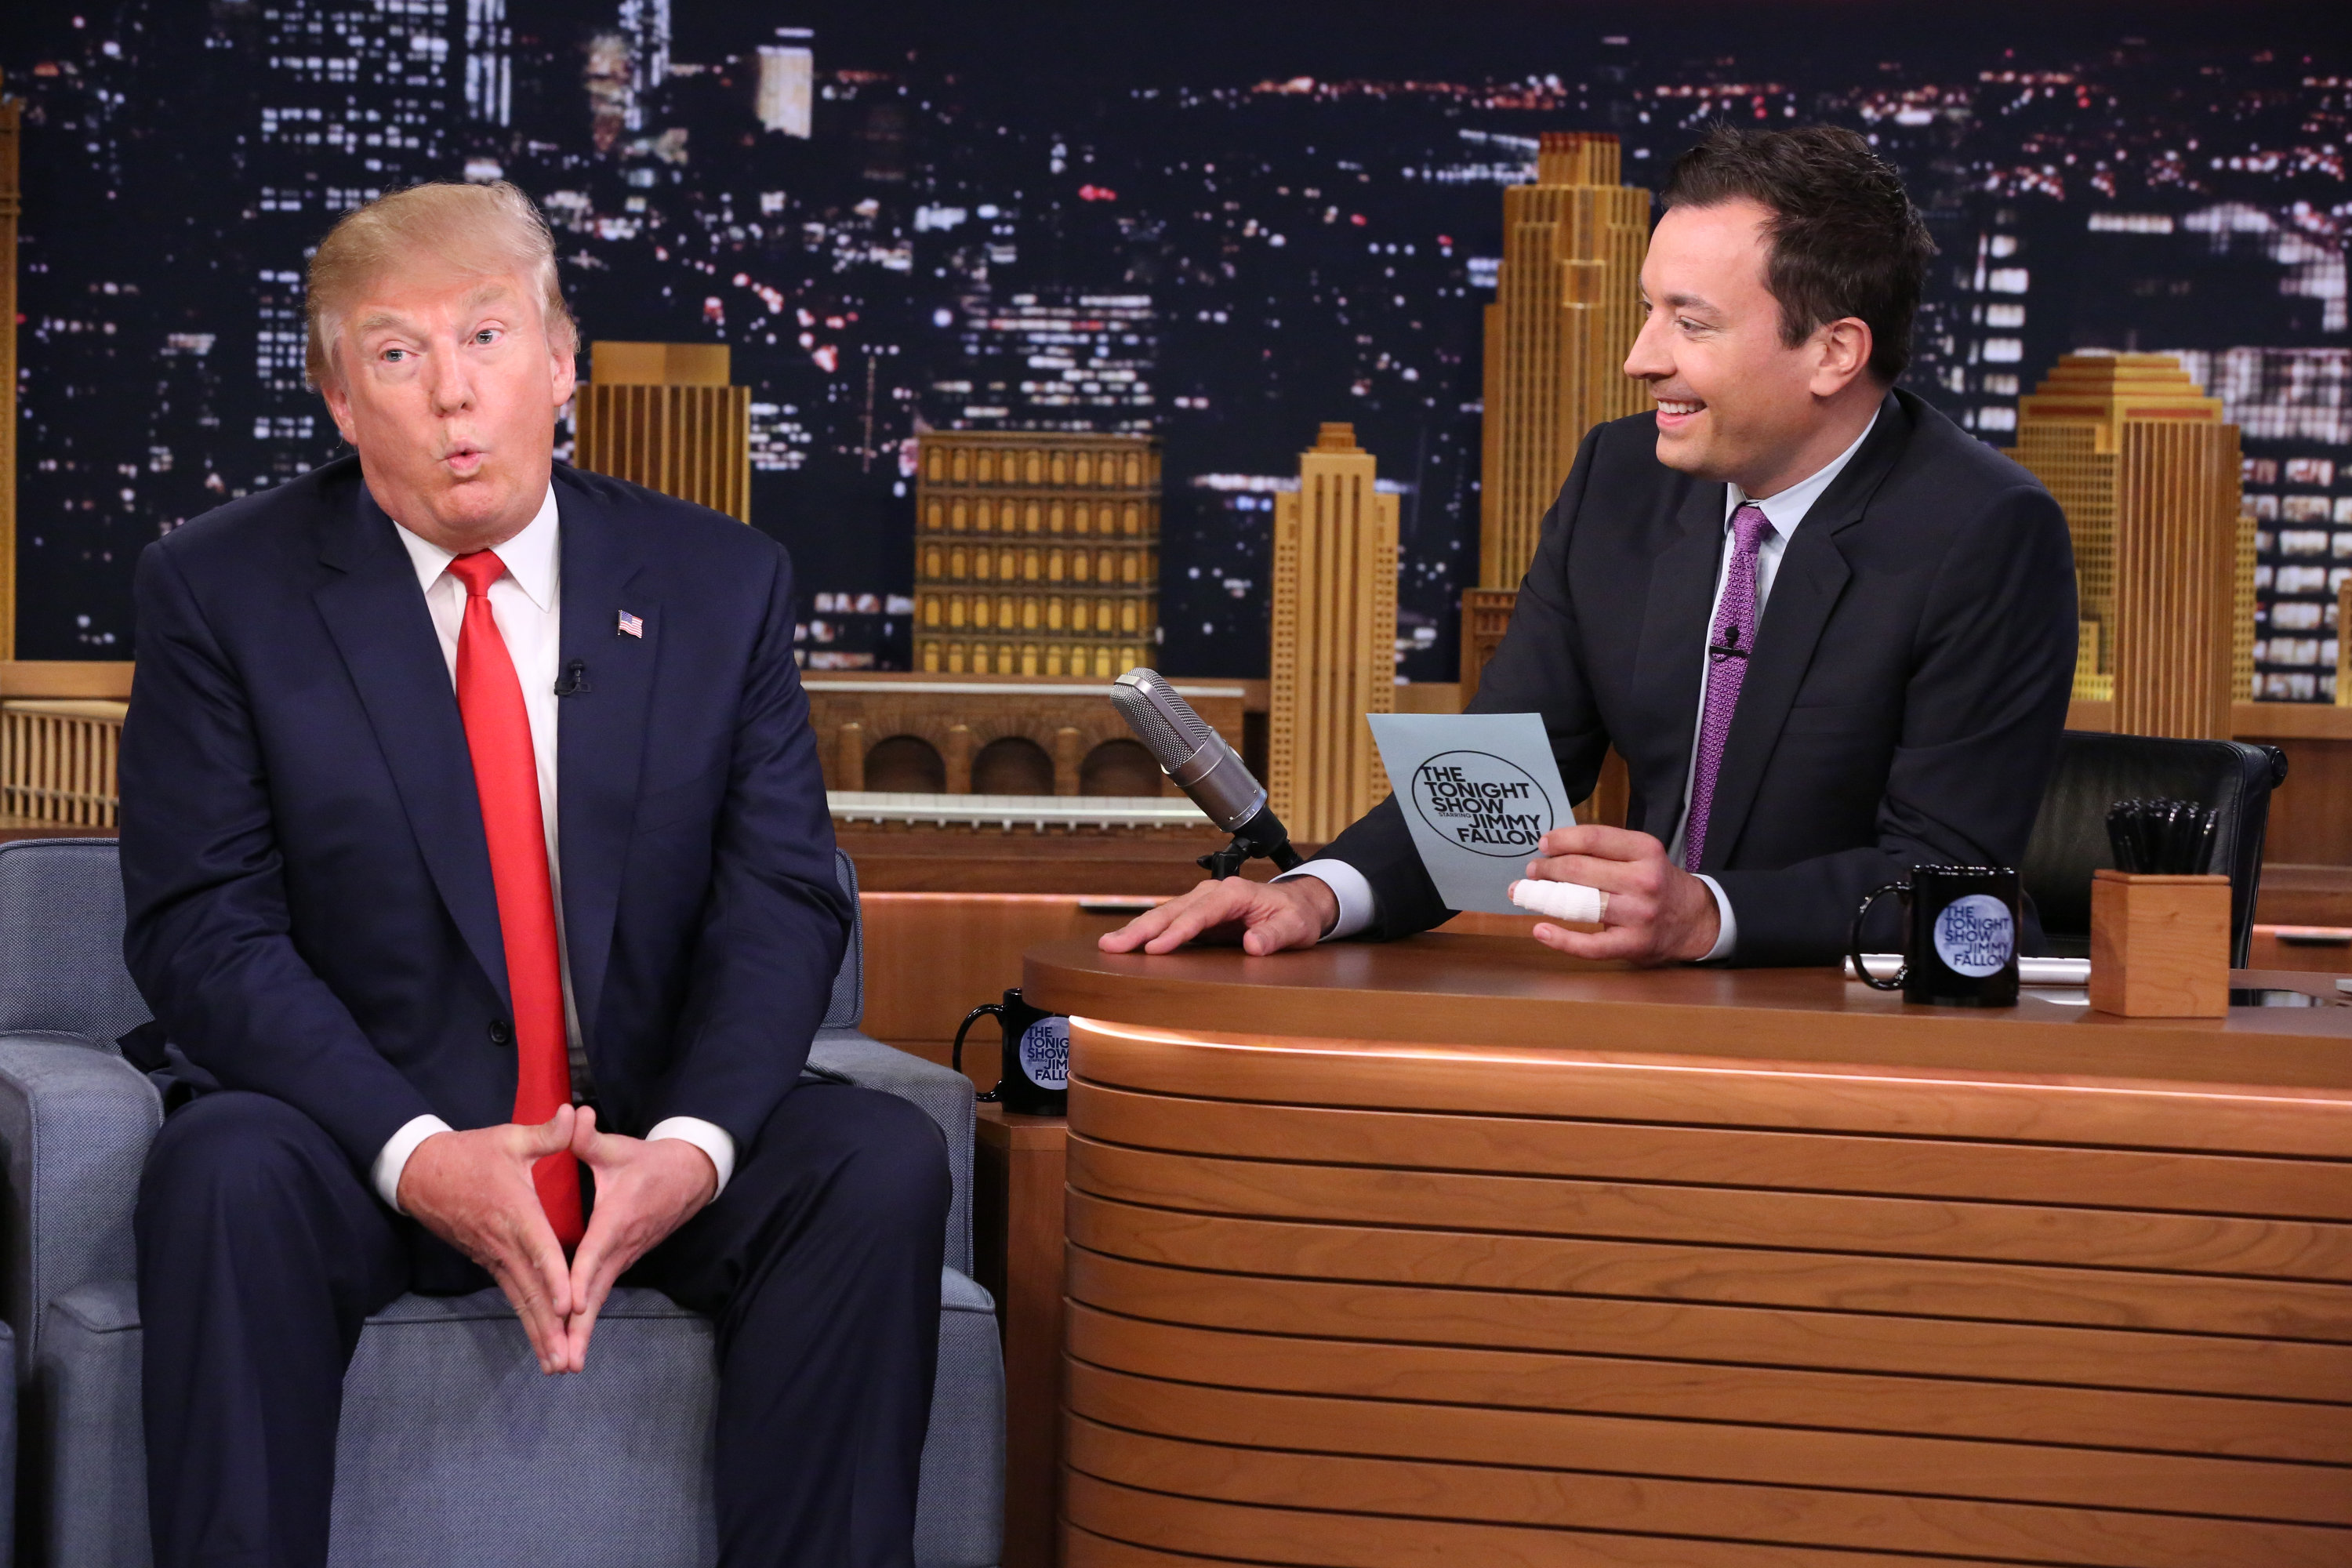 Election 2016: Jimmy Fallon asks Donald Trump if he's ever ...